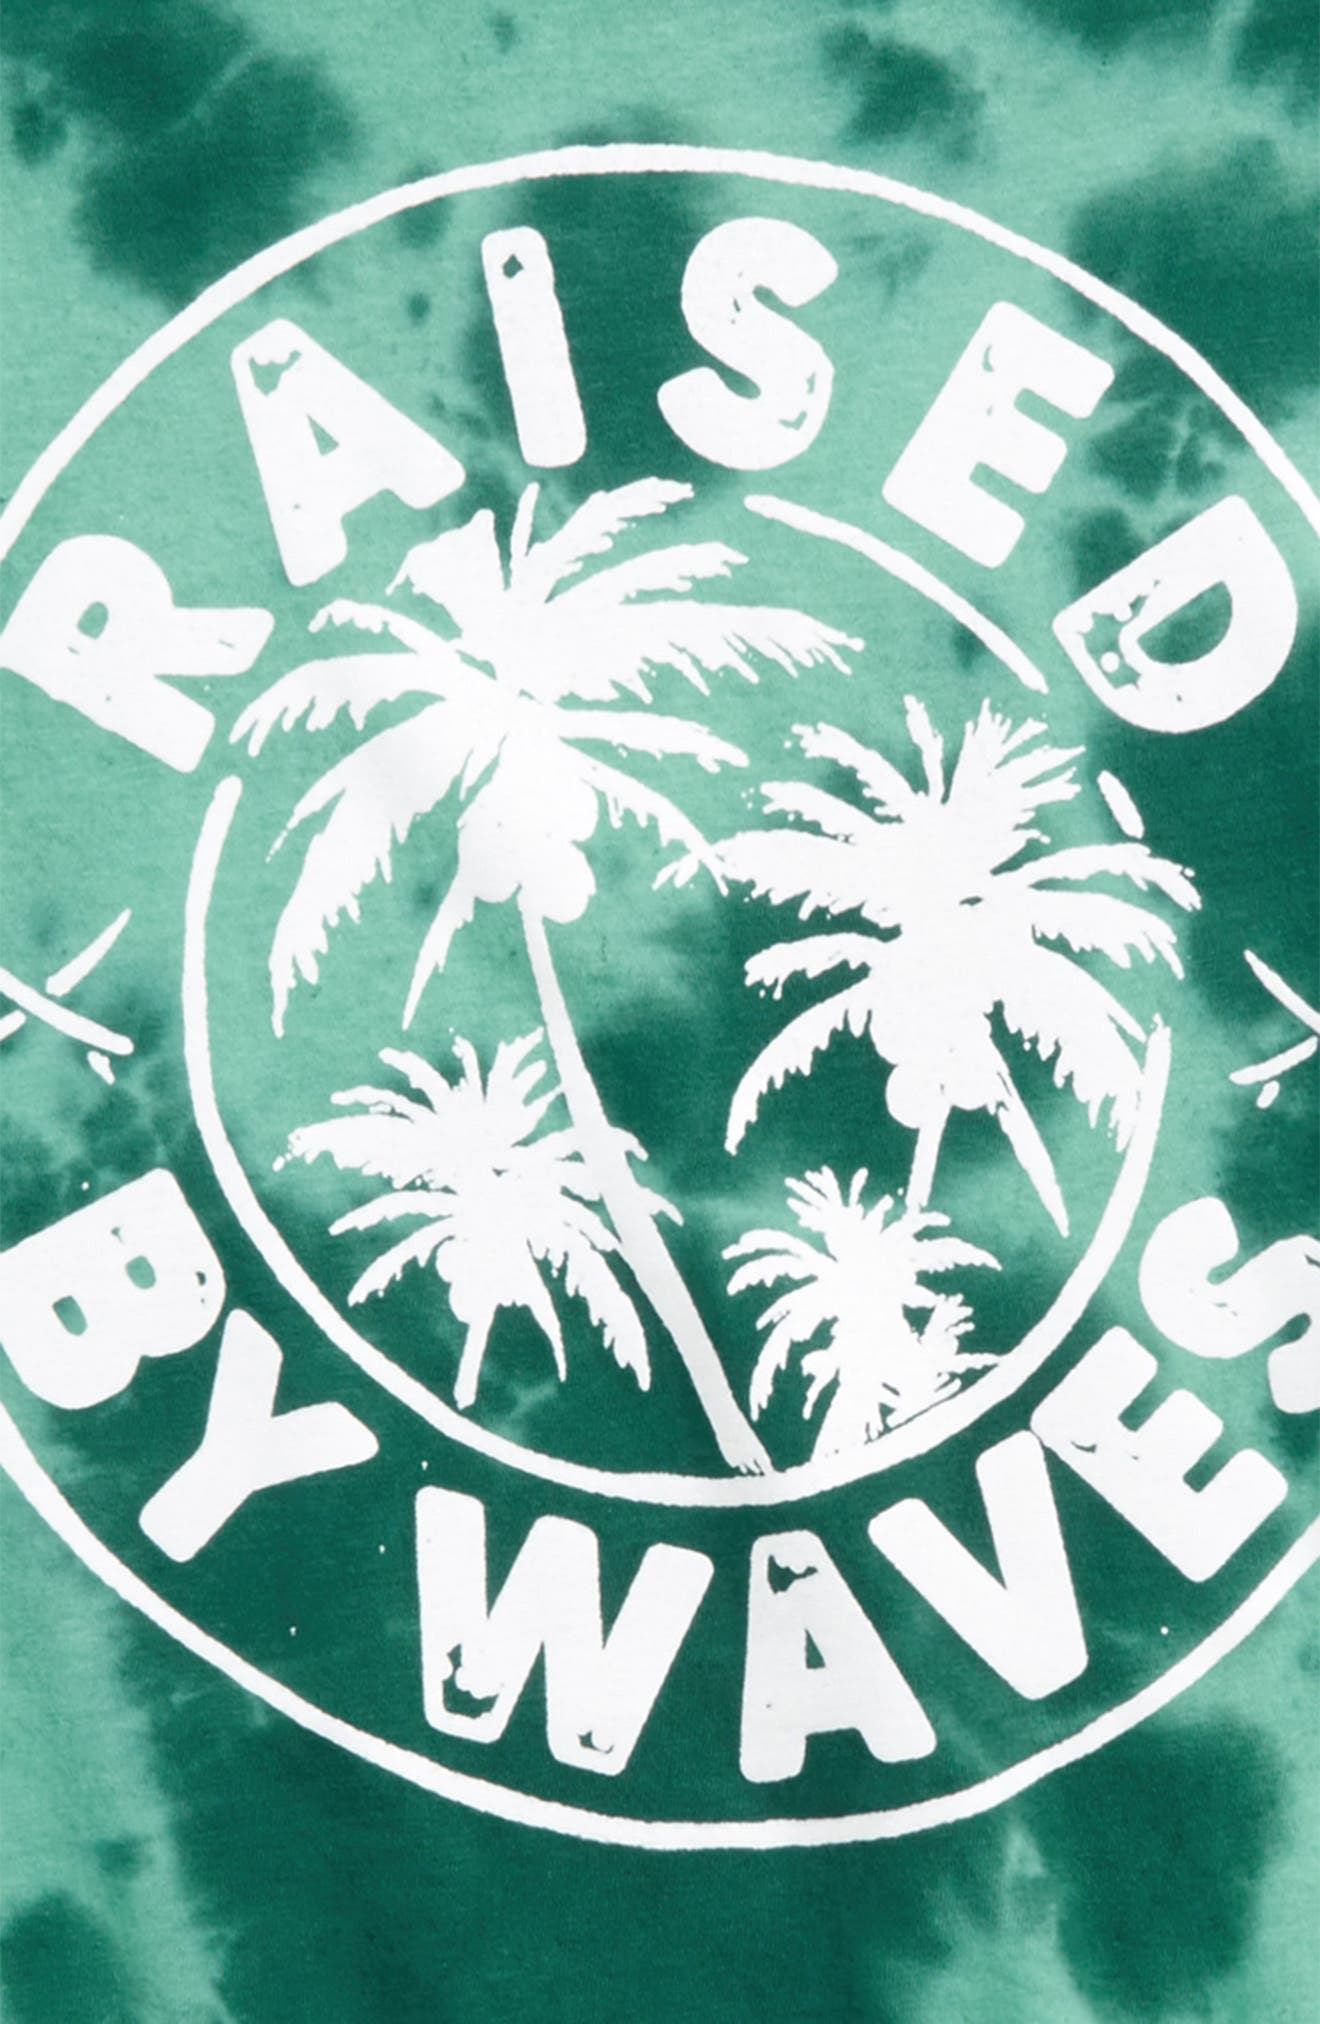 Raised by Waves Graphic T-Shirt,                             Alternate thumbnail 2, color,                             Teal Gem- Black Waves